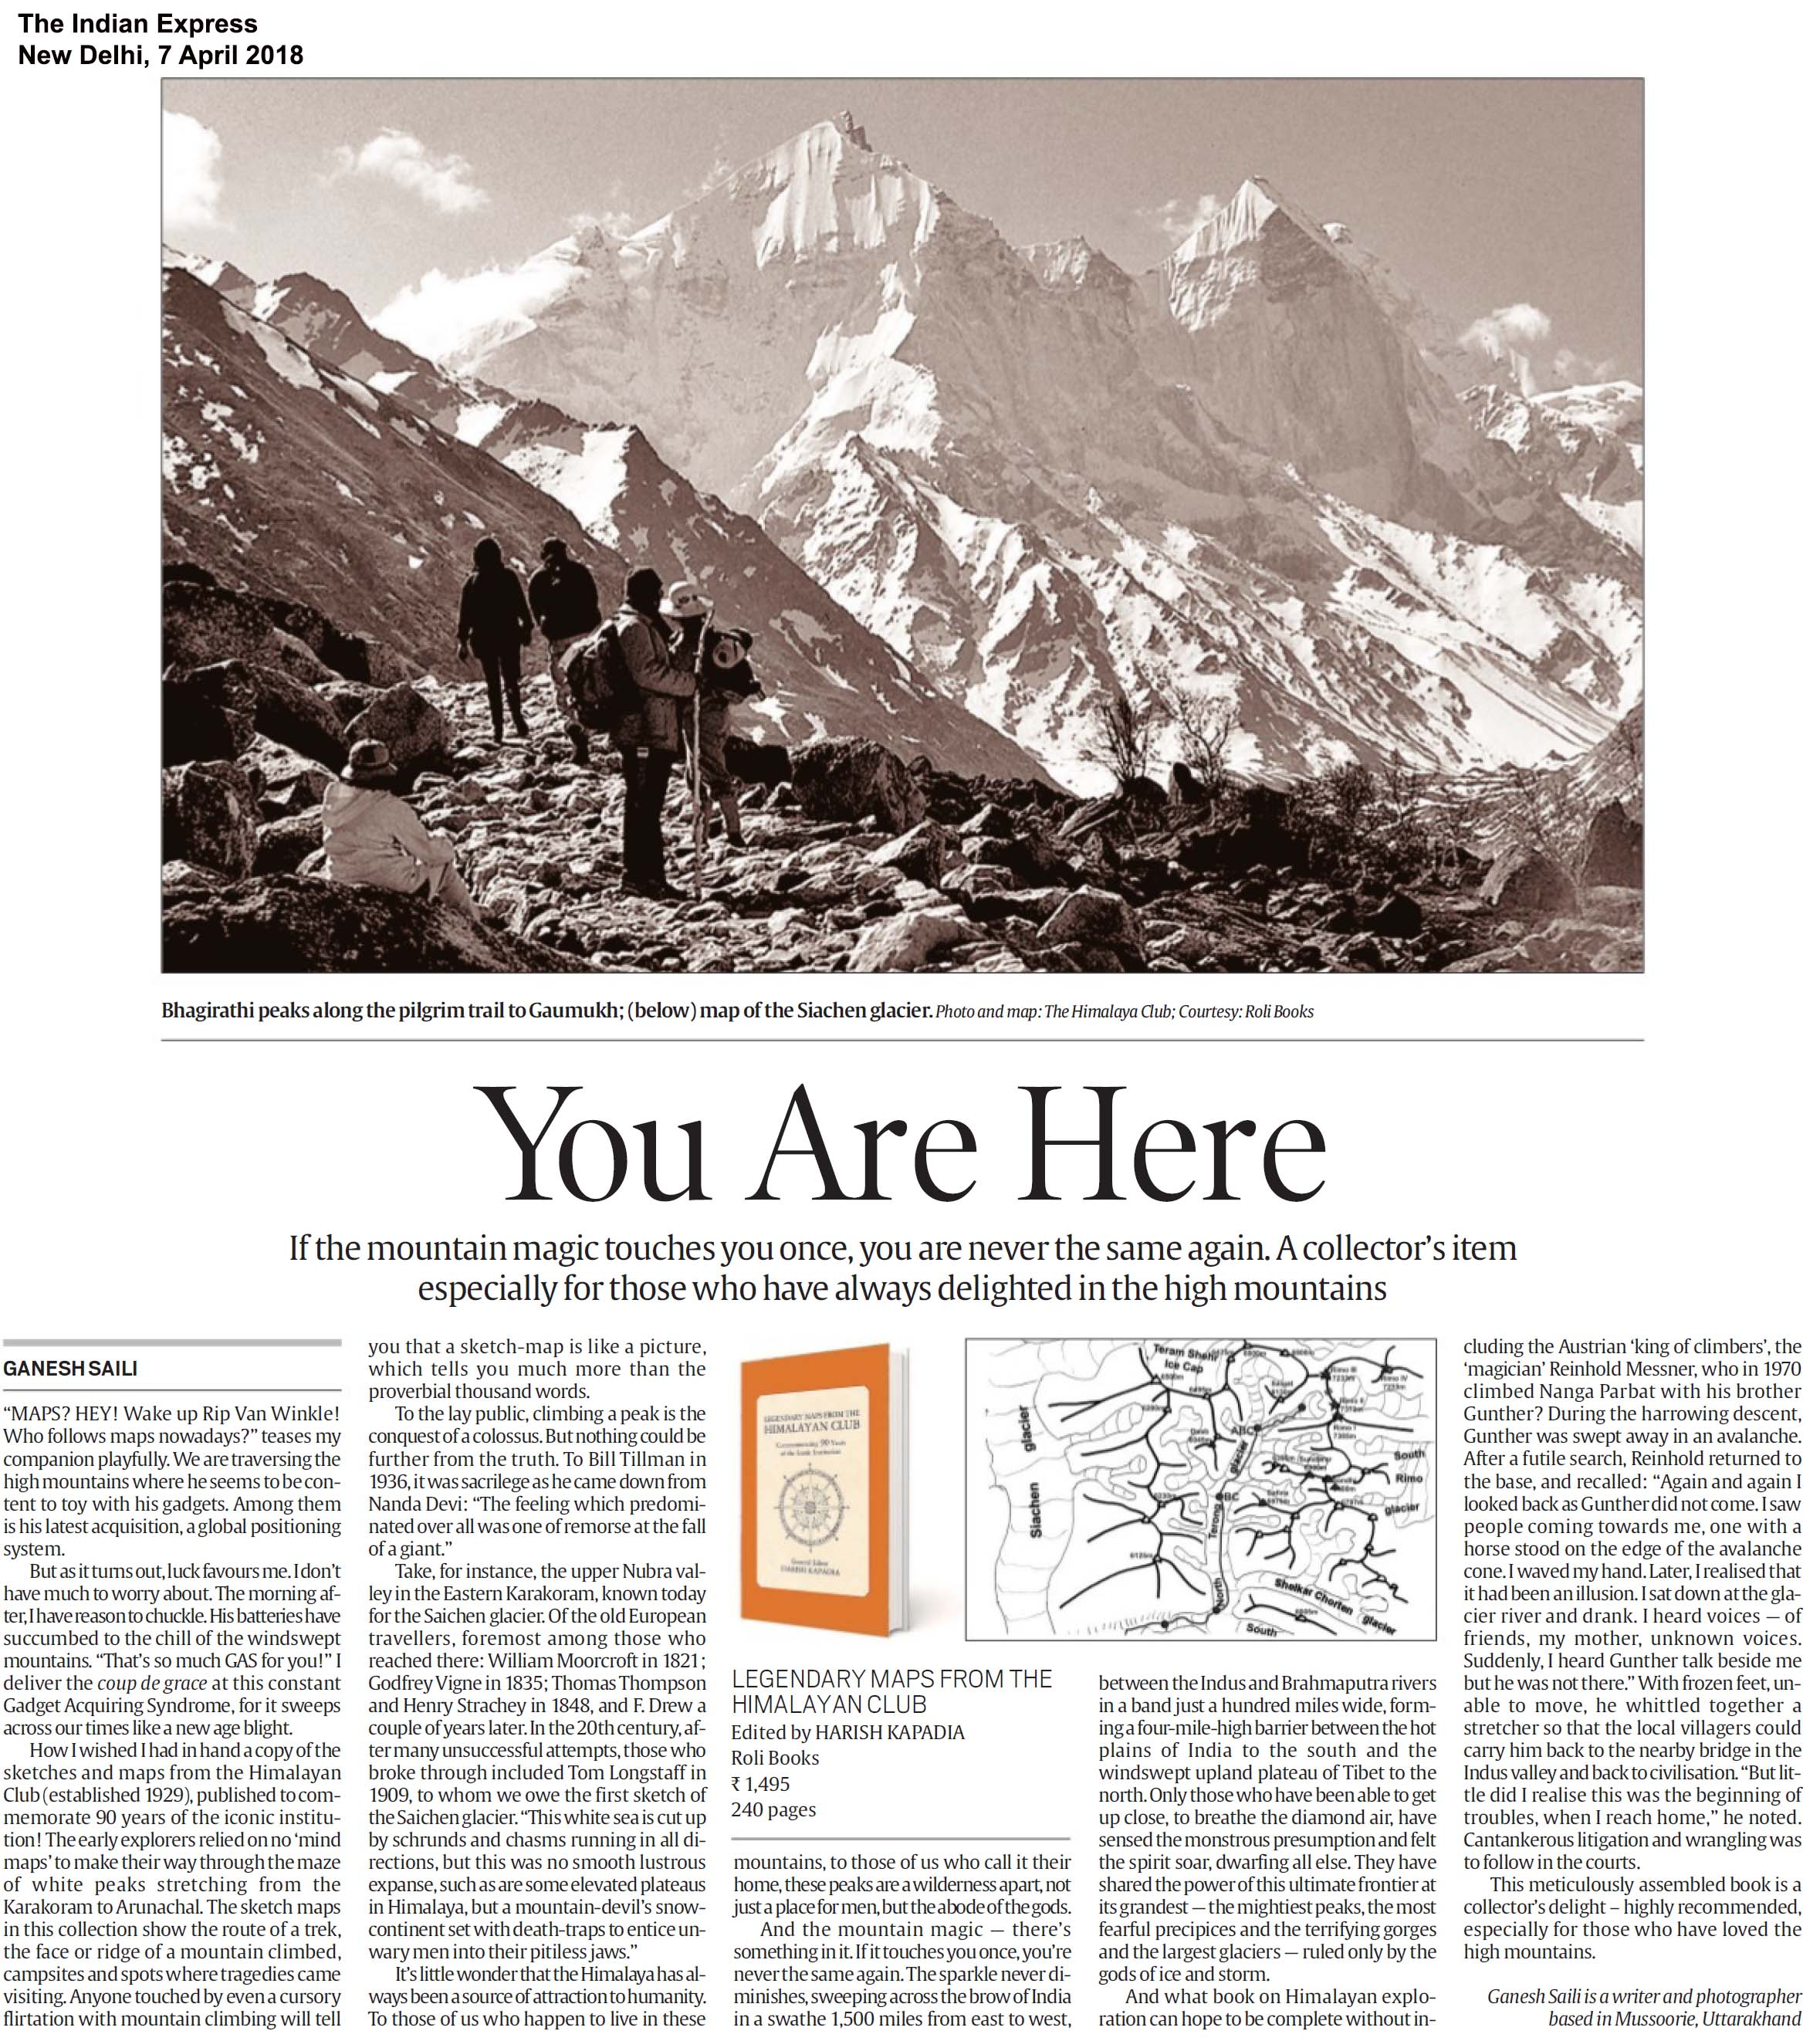 Legendary Maps From The Himalayan Club<br><span>  The Indian Express, New Delhi</span>